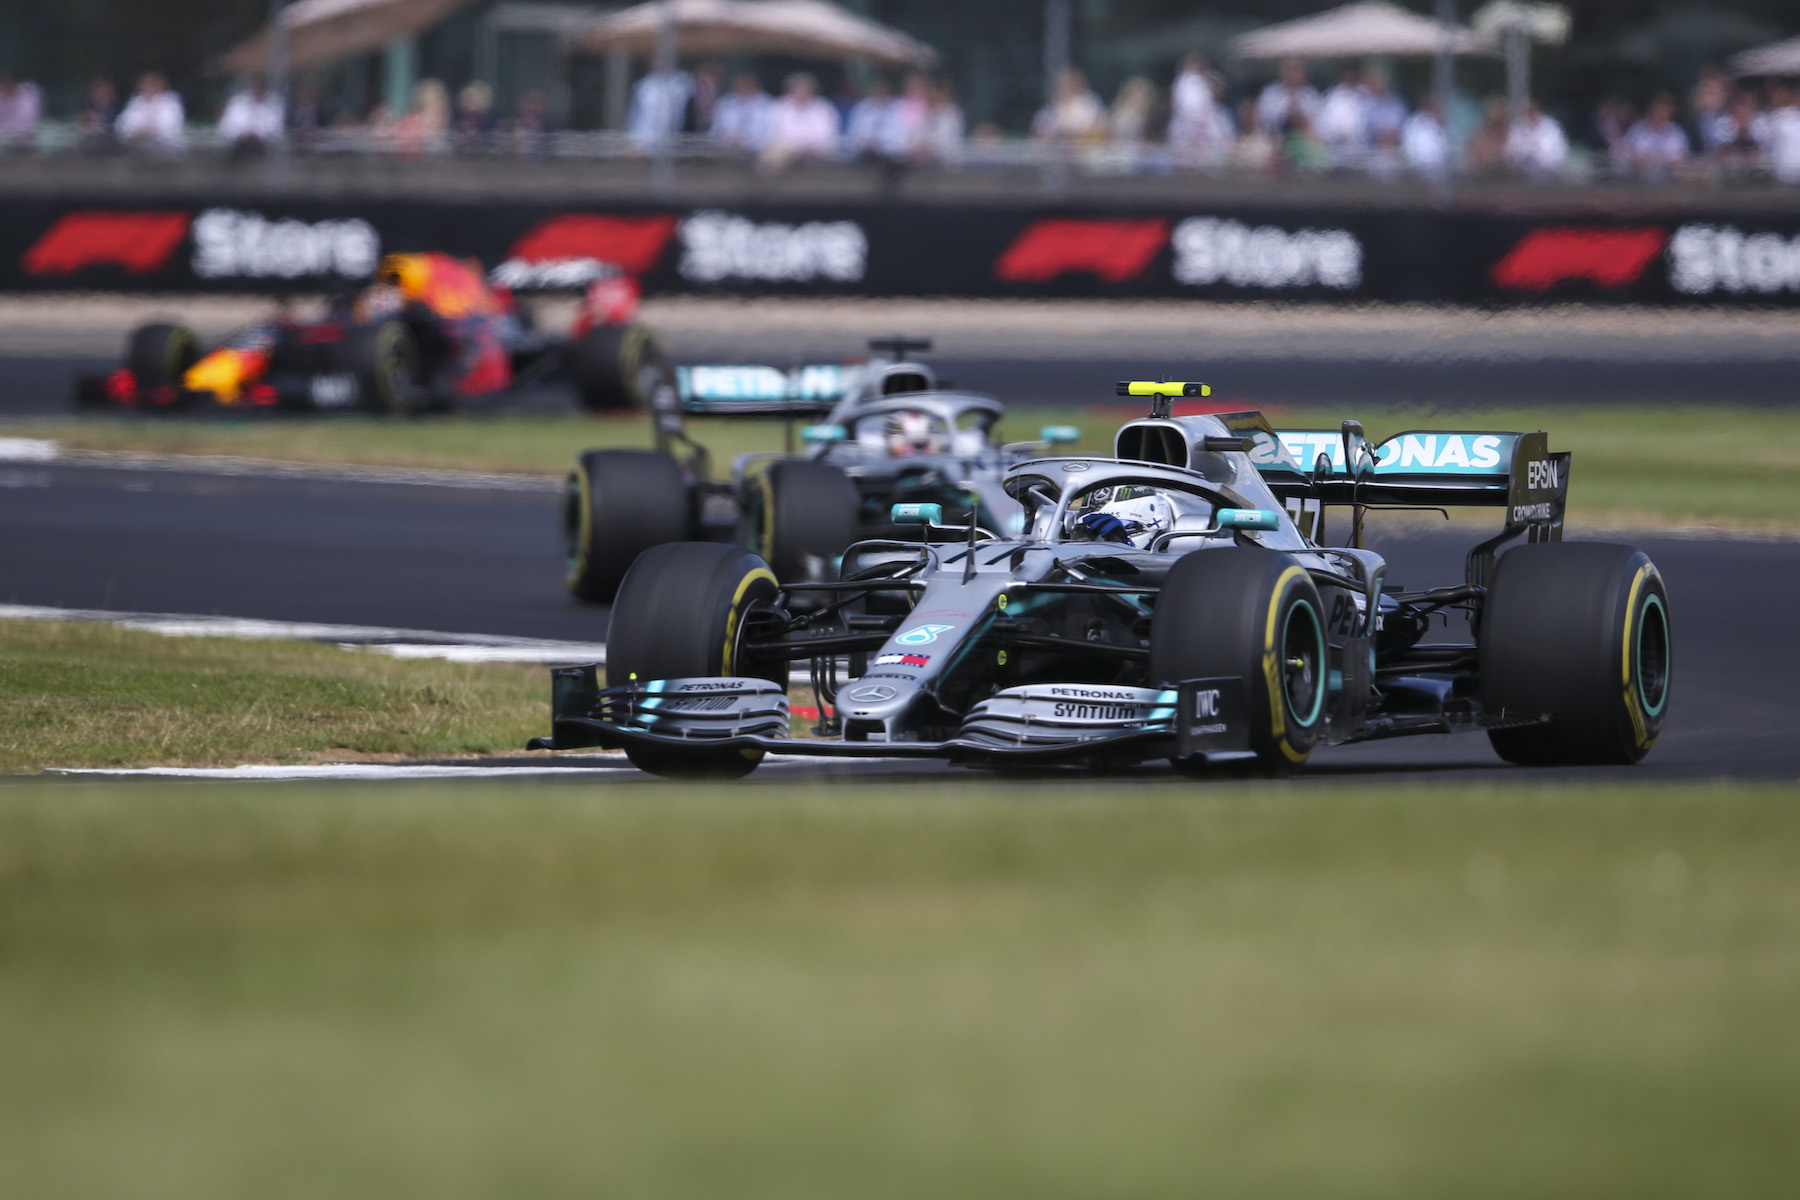 6 F 2019 British Grand Prix Sunday 36.jpg